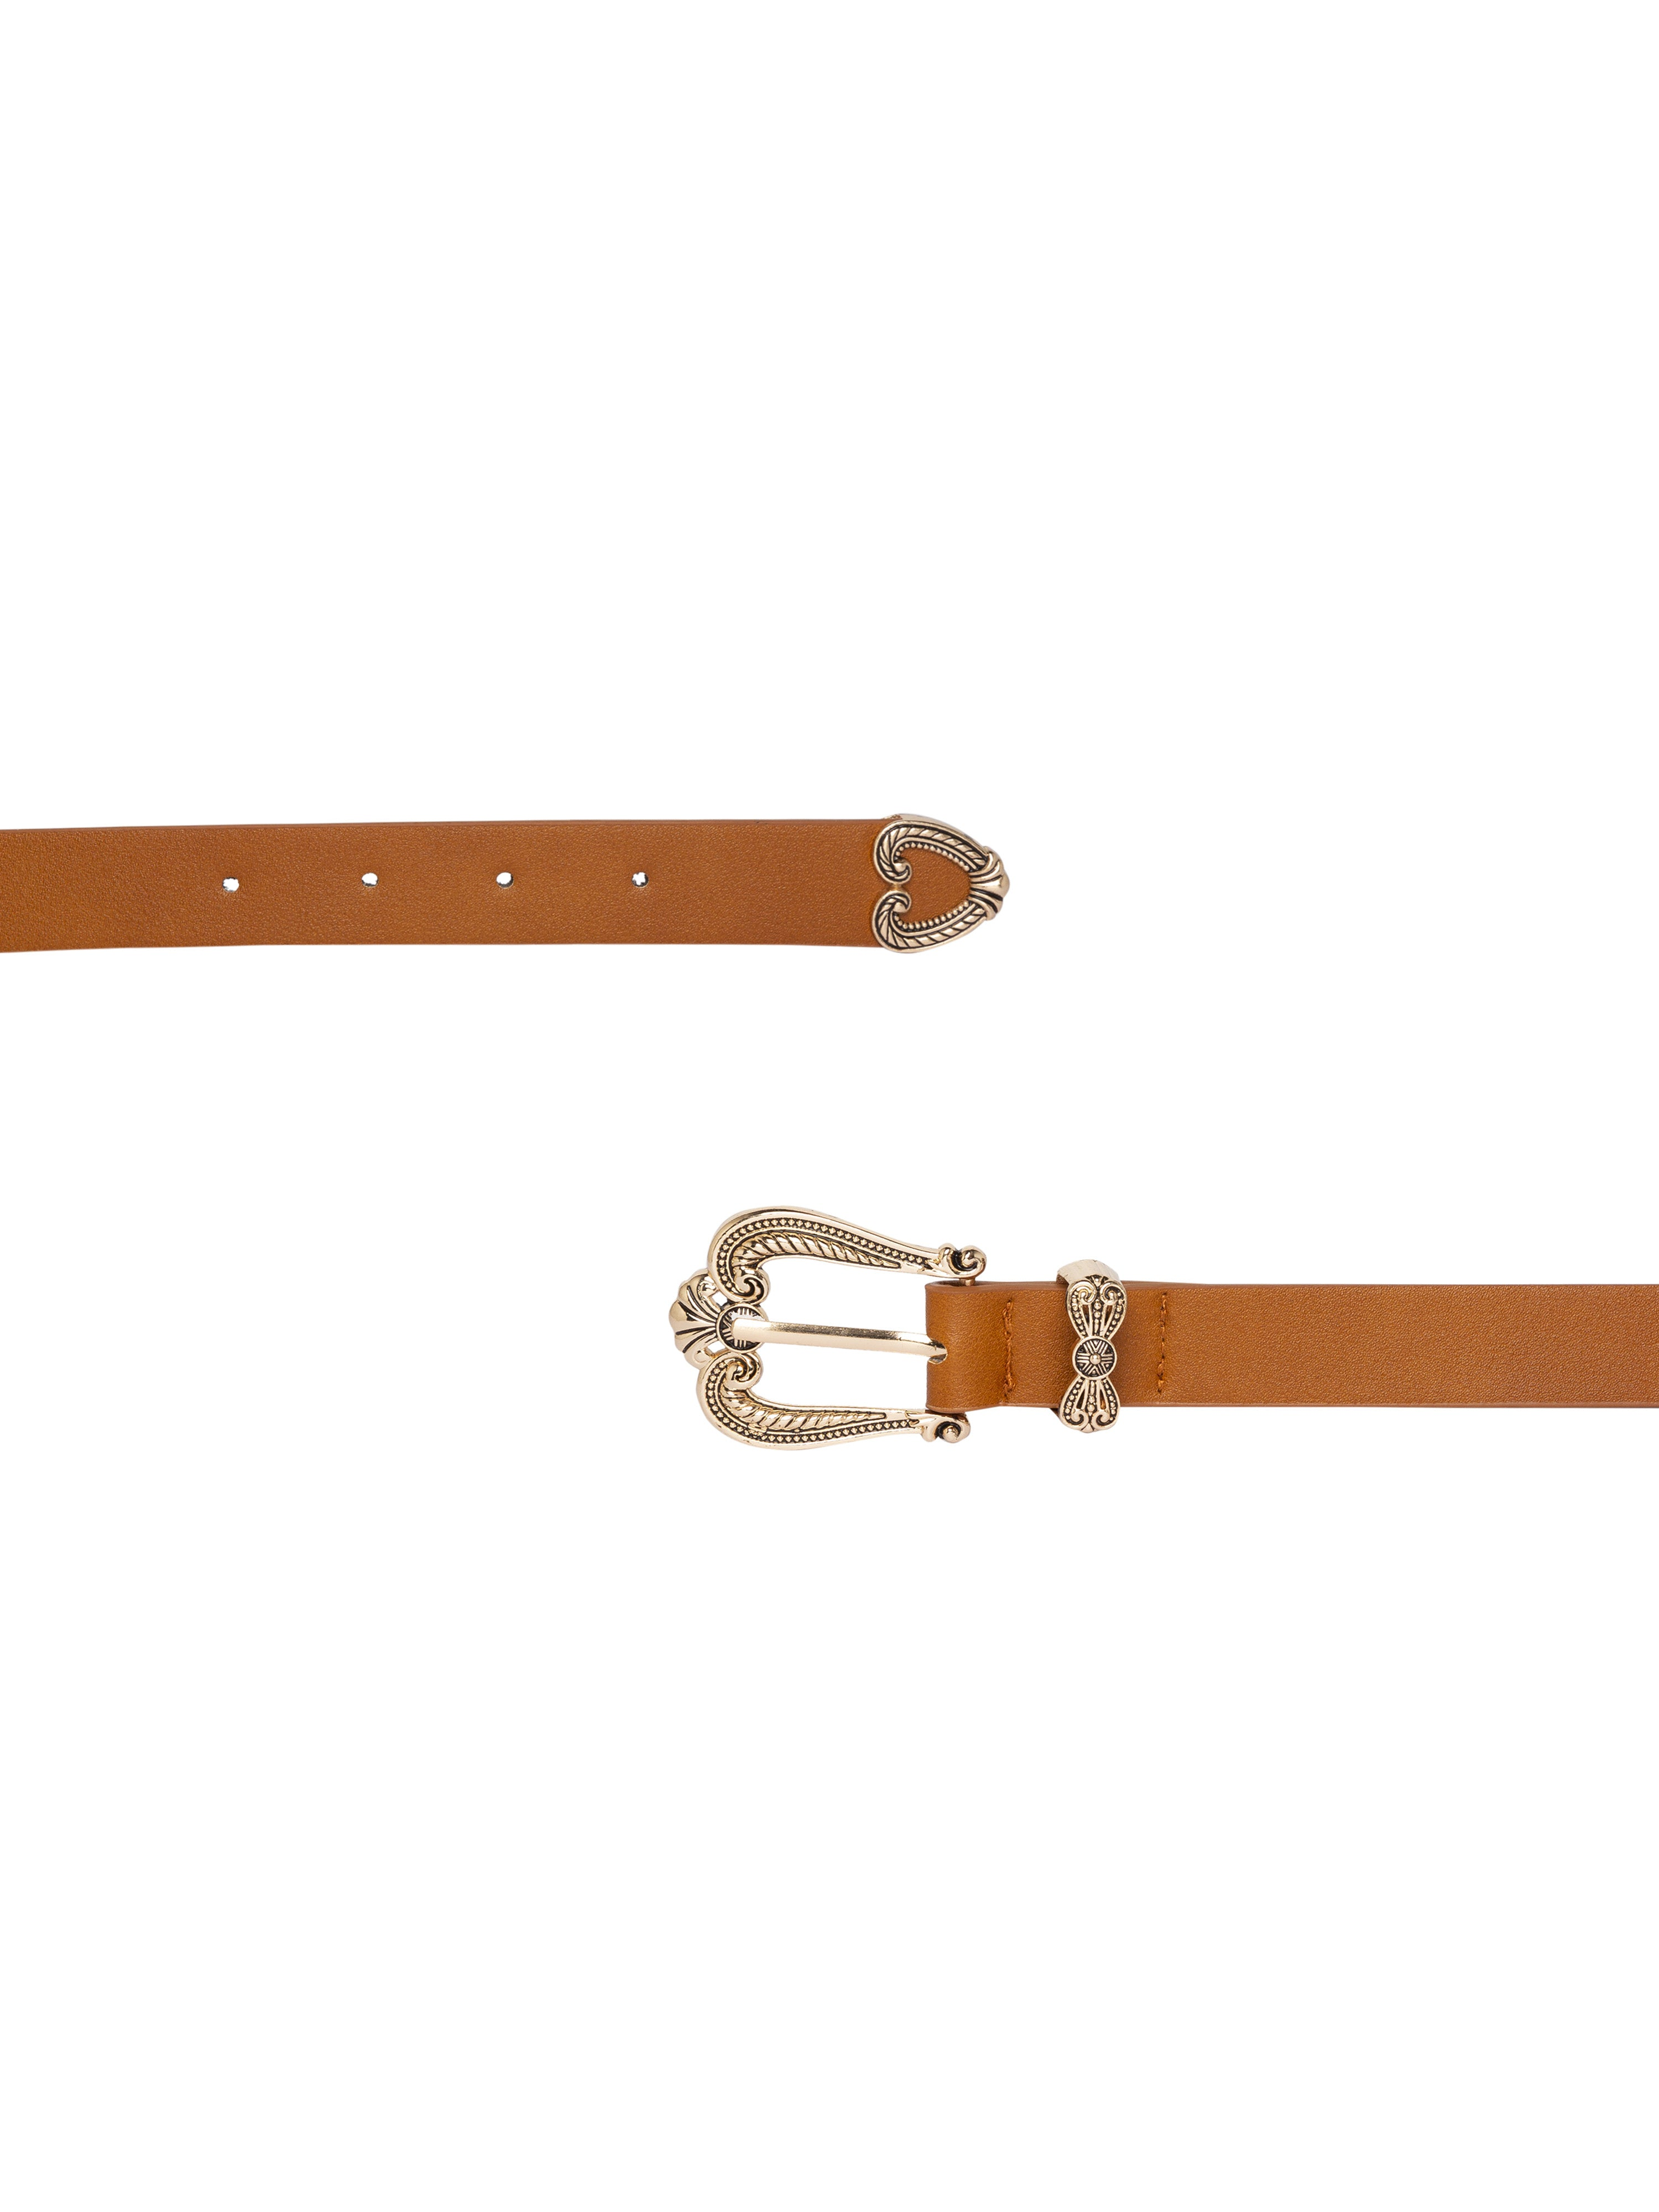 Ornate Buckle Tan Belt-3